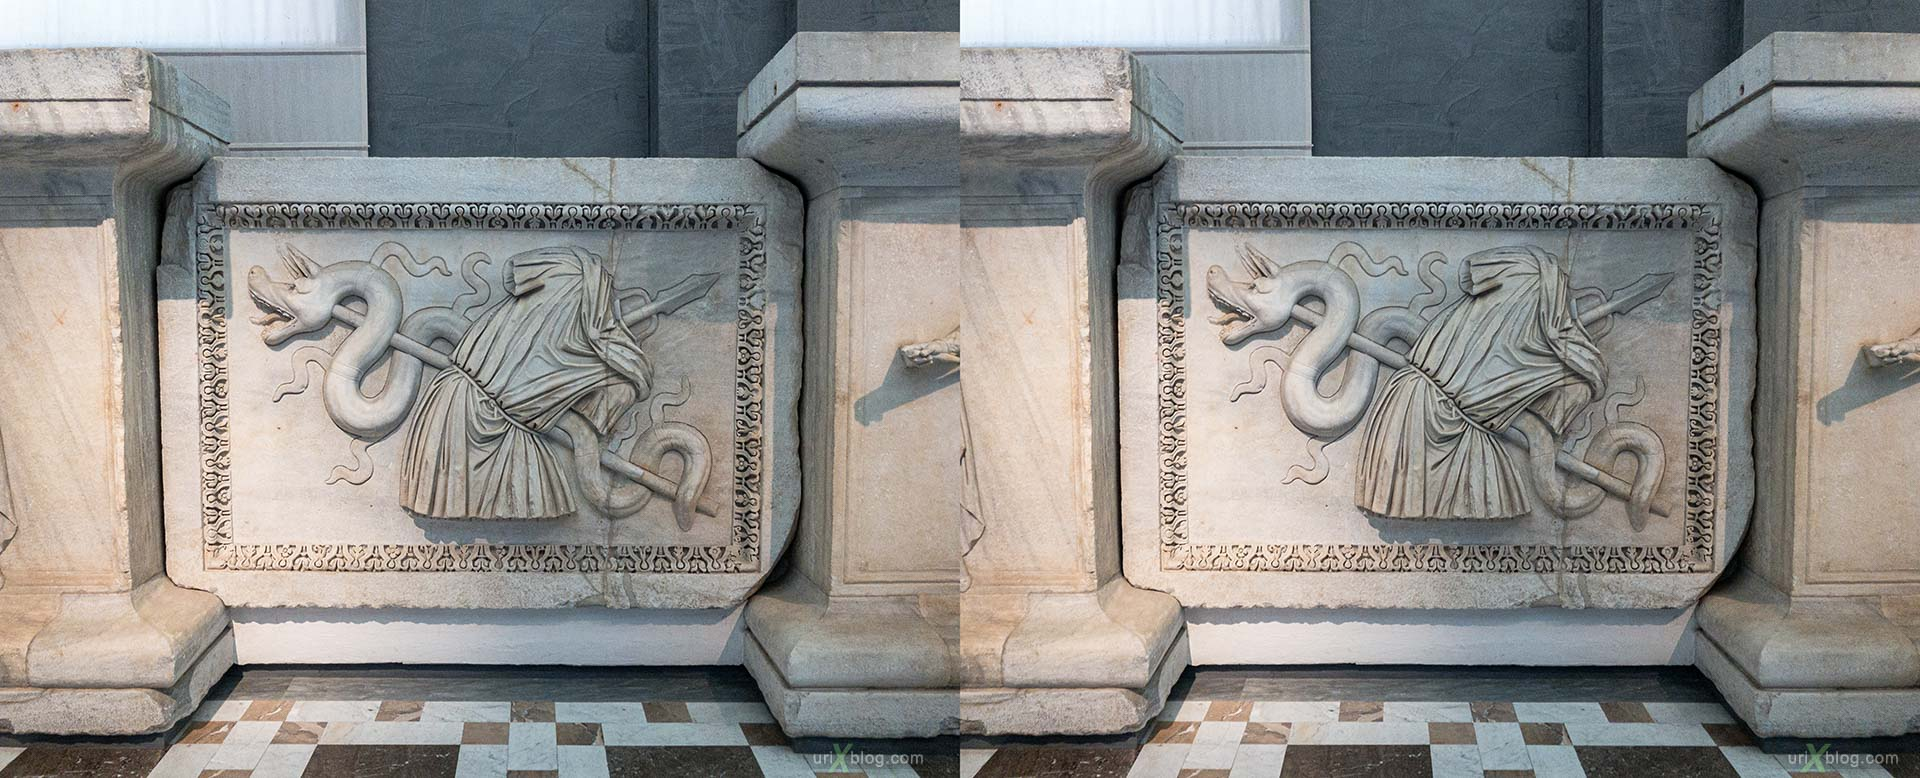 National Archaeological Museum of Naples, ancient Rome, Pompei, exhibition, Naples, Italy, 3D, stereo pair, cross-eyed, crossview, cross view stereo pair, stereoscopic